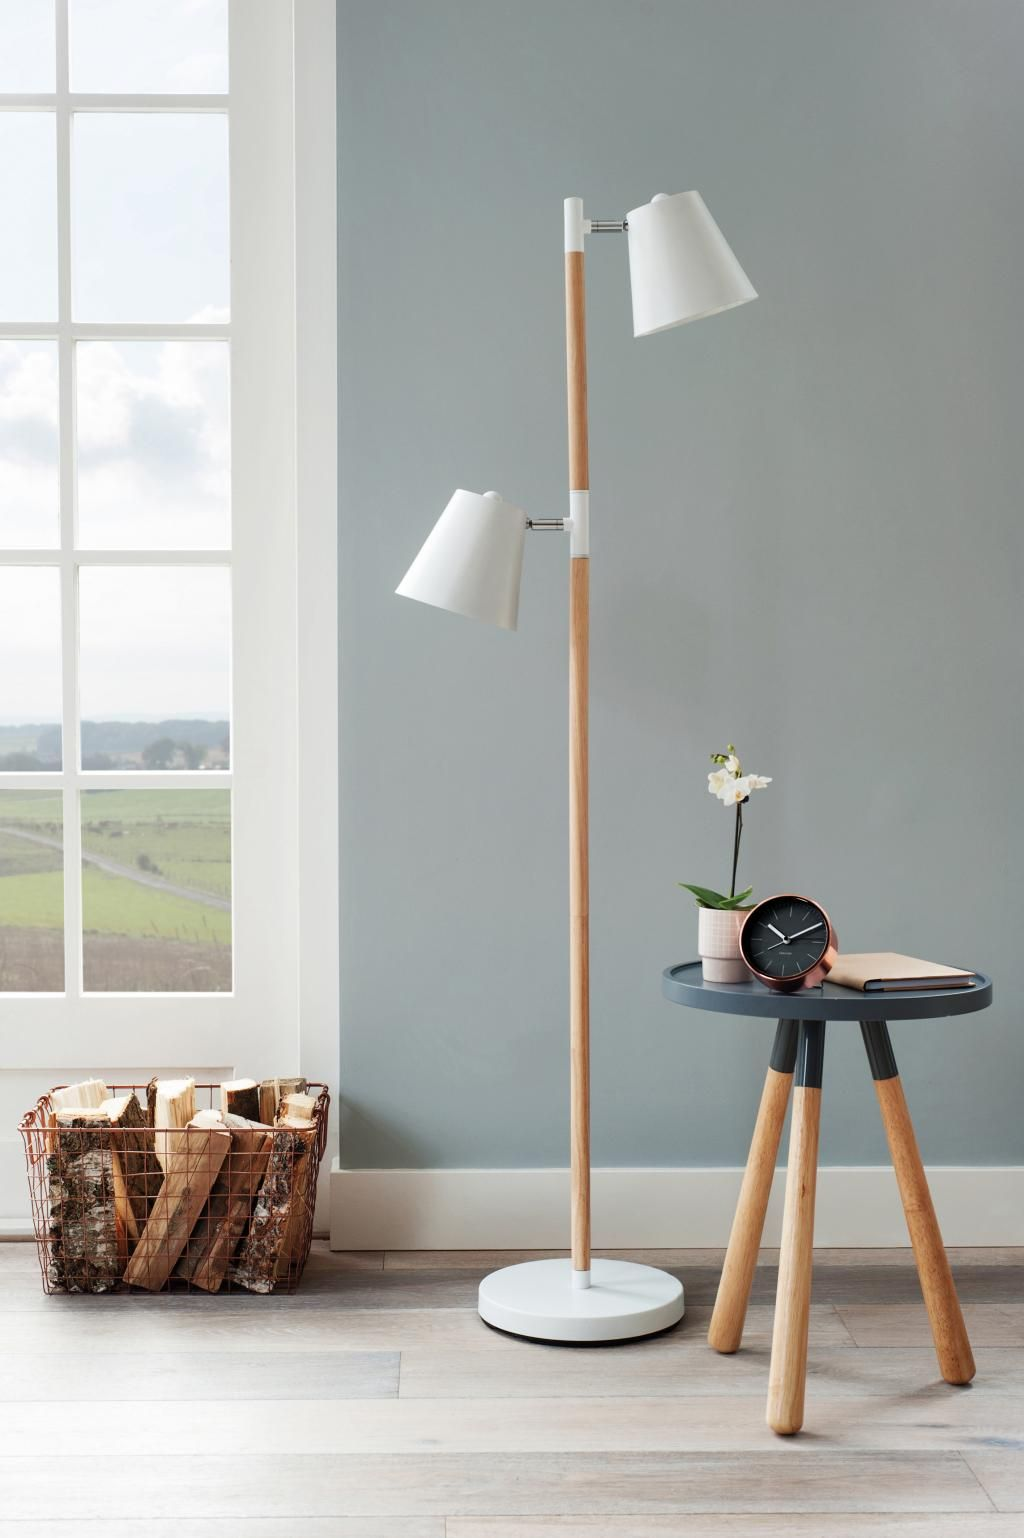 Schlafzimmer Stehlampe Stehleuchte Rubi Weià Lighting Adjustable Floor Lamp Tall